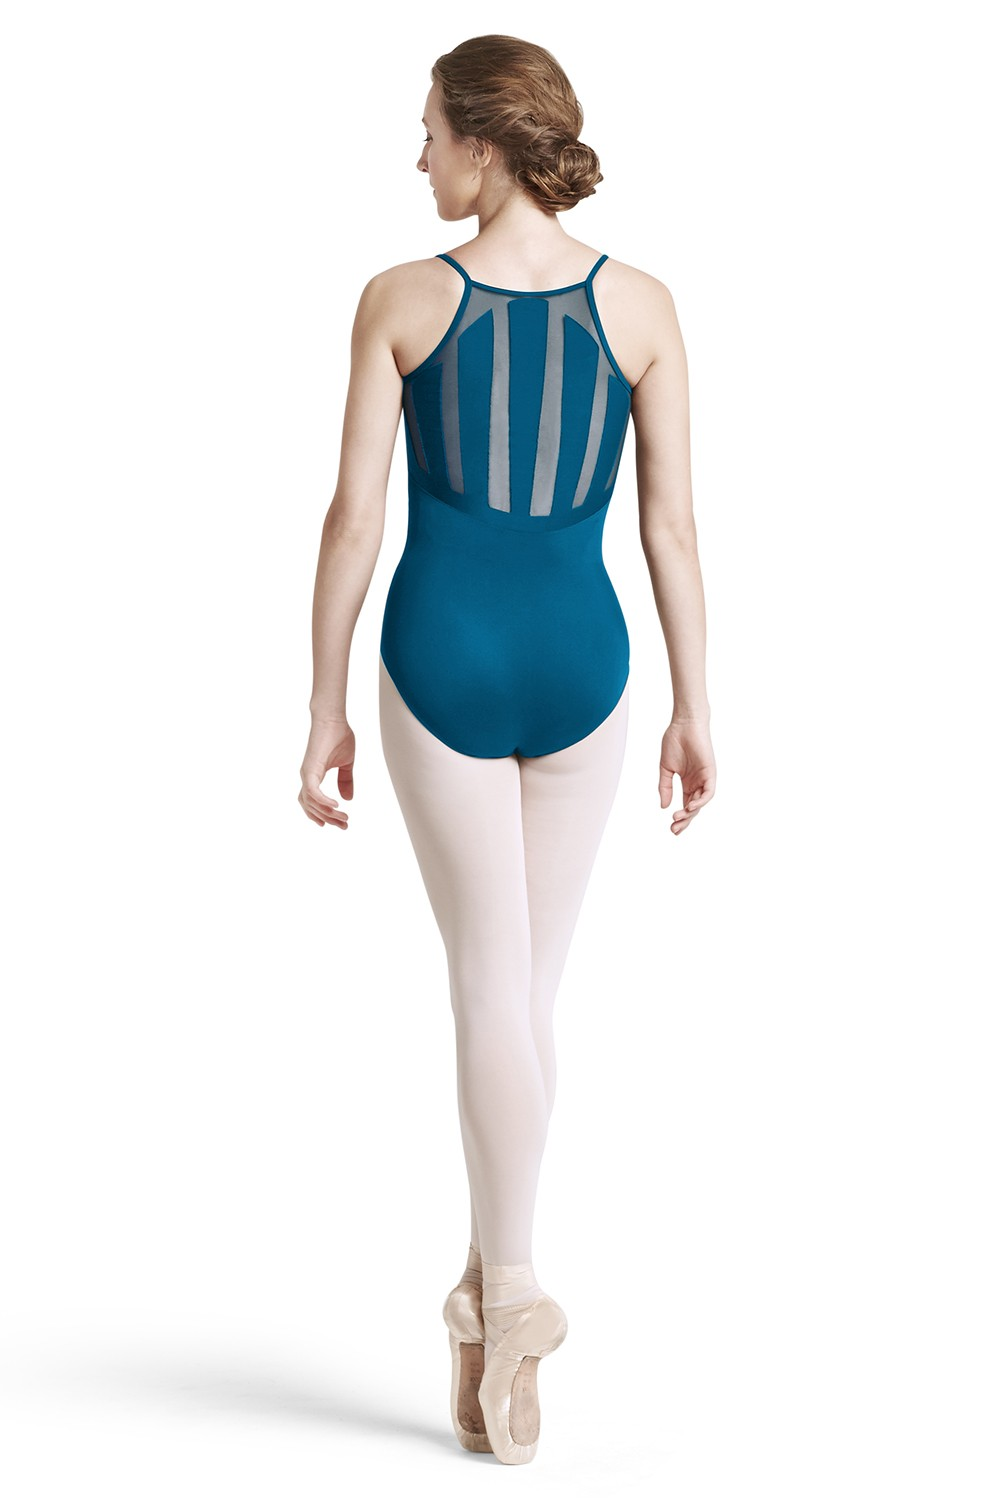 Nalina Womens Camisole Leotards